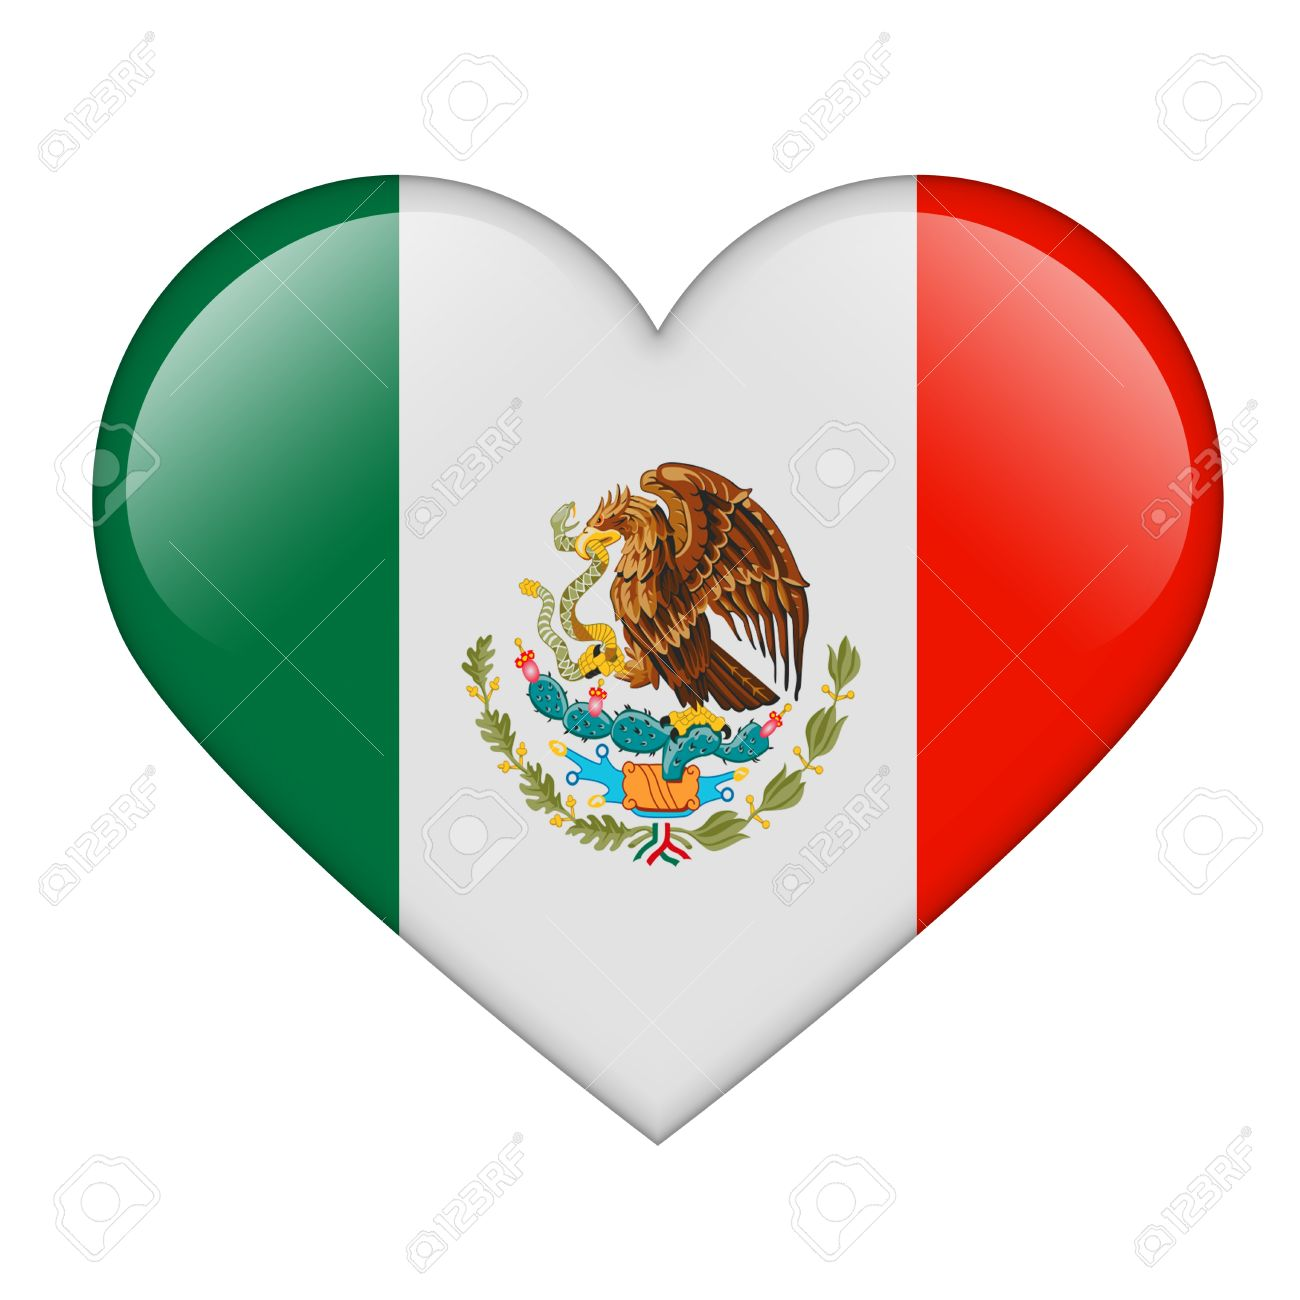 The Mexican flag in the form of a glossy heart Stock Photo - 17476758